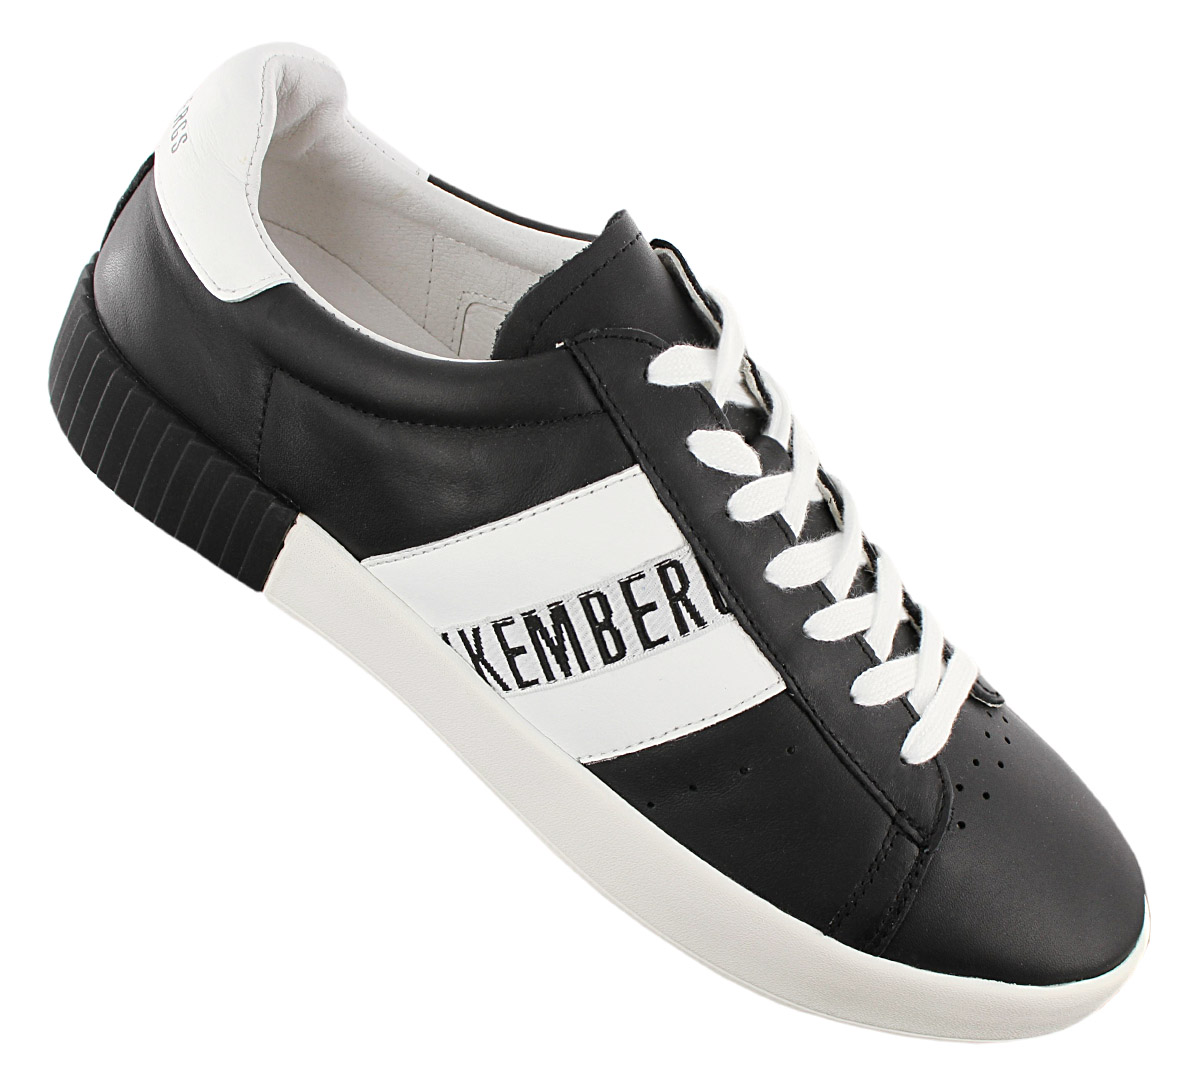 Details about Bikkembergs Cosmos 2434 Men's Sneaker BKE109350 Black Leather Shoes Leisure